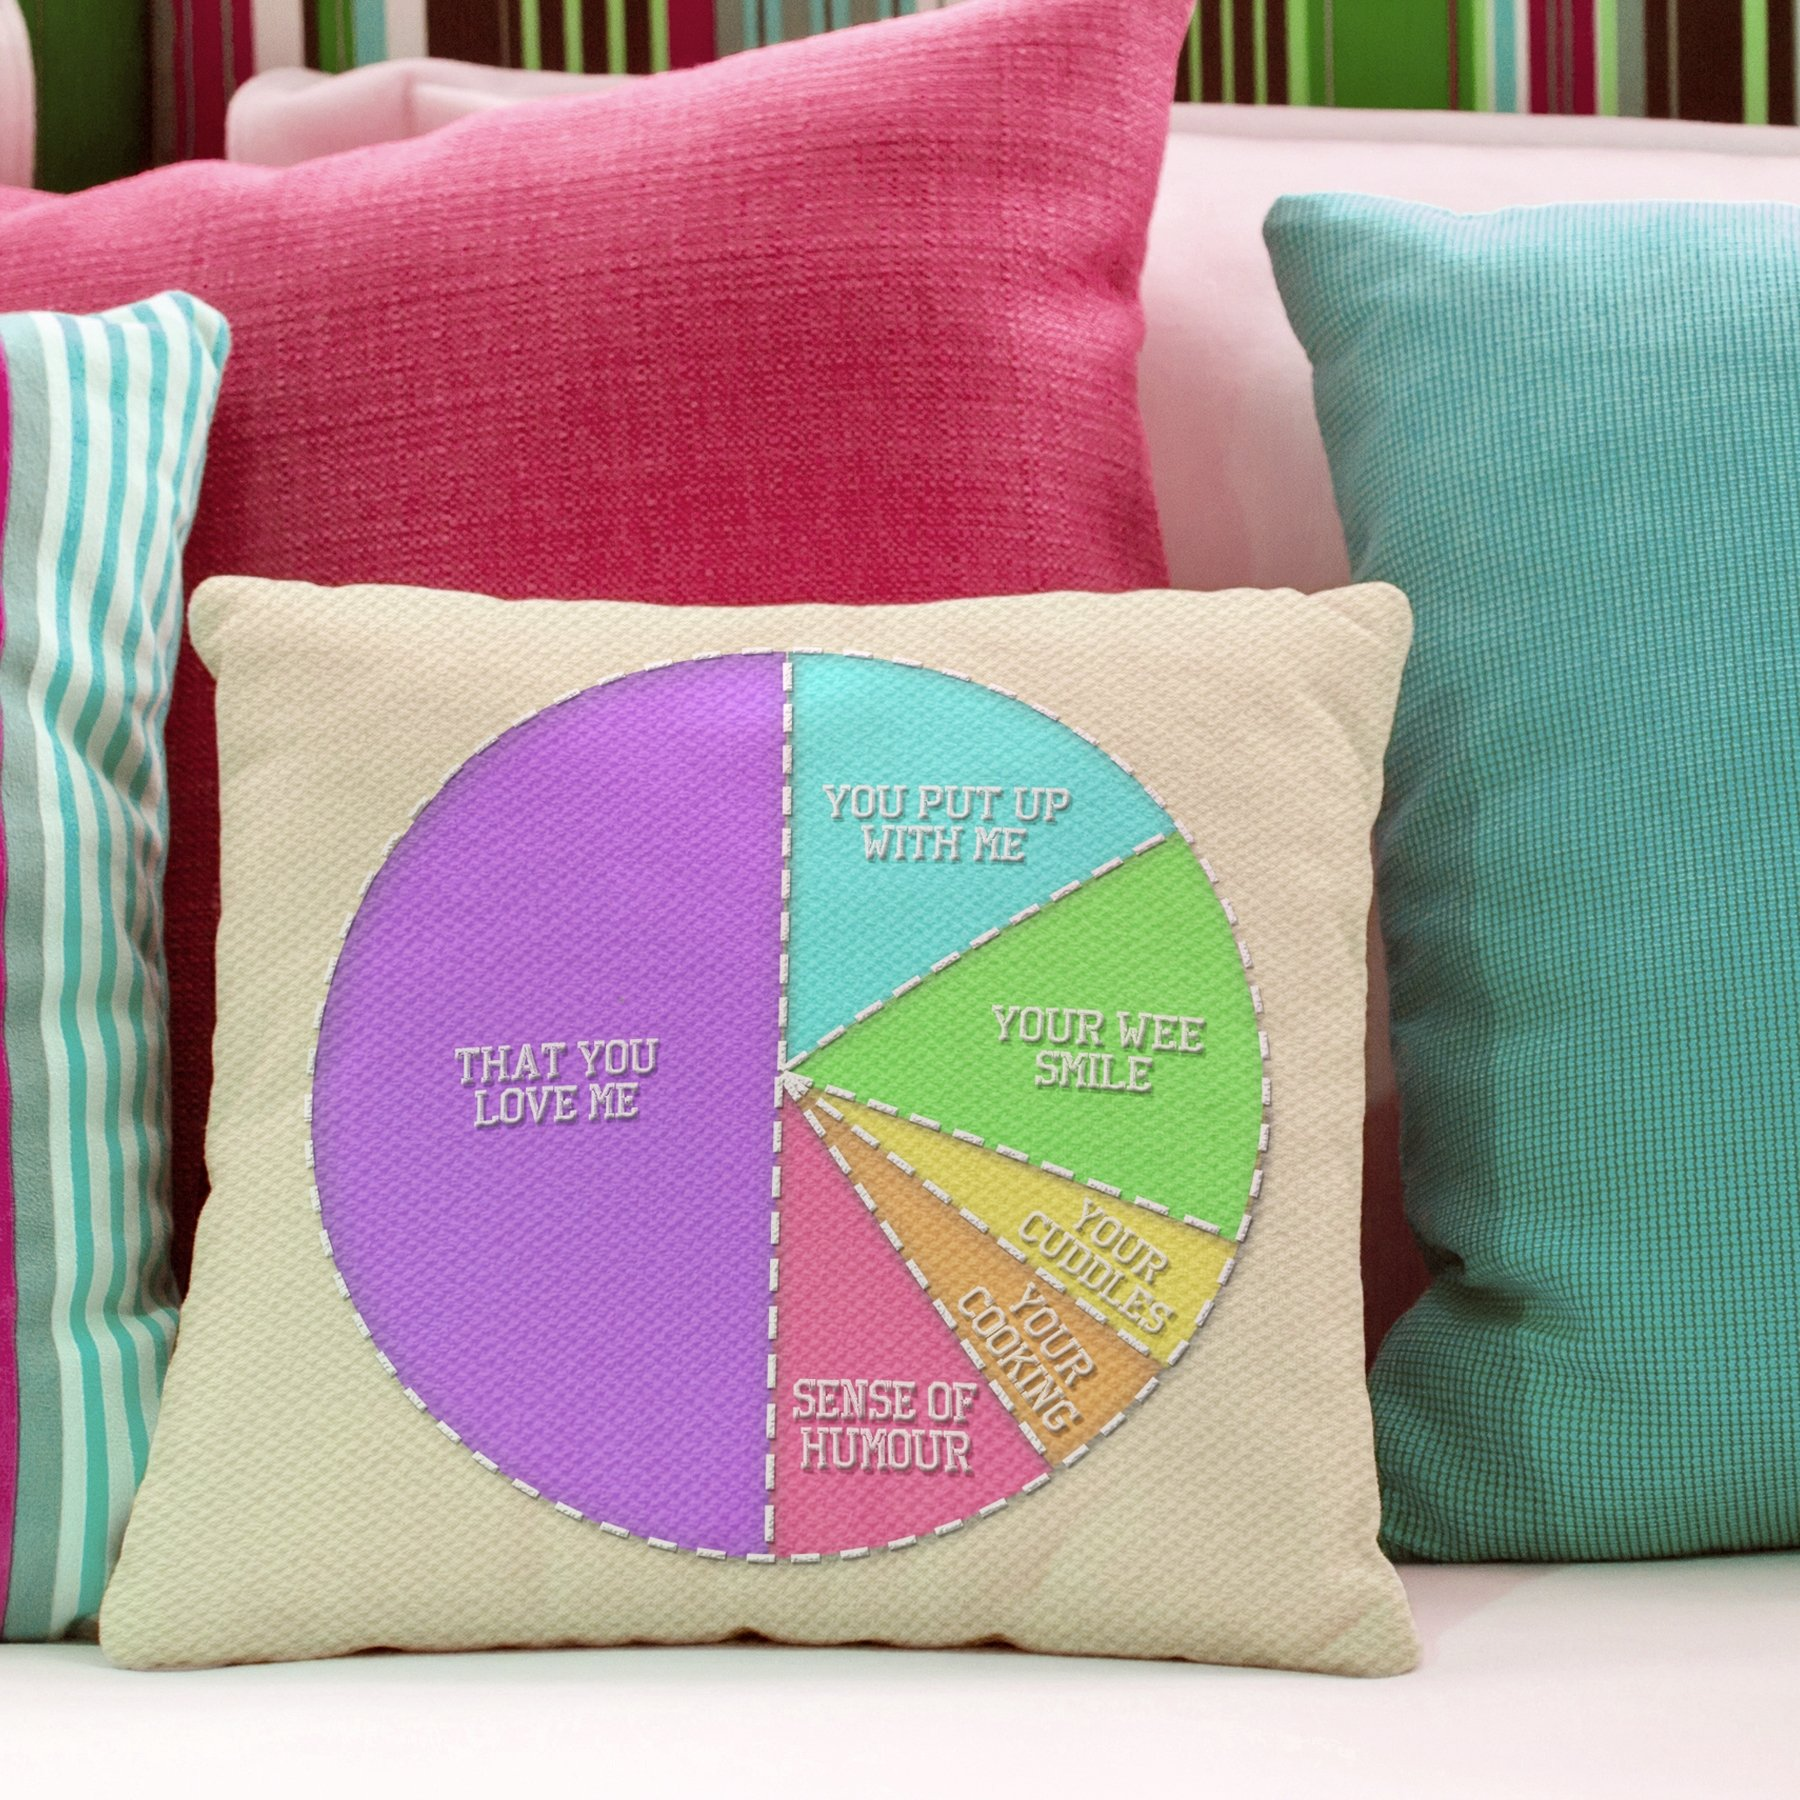 Things I Love About You Personalised Cushion (50 x 50 cm) by FMC (Image #2)